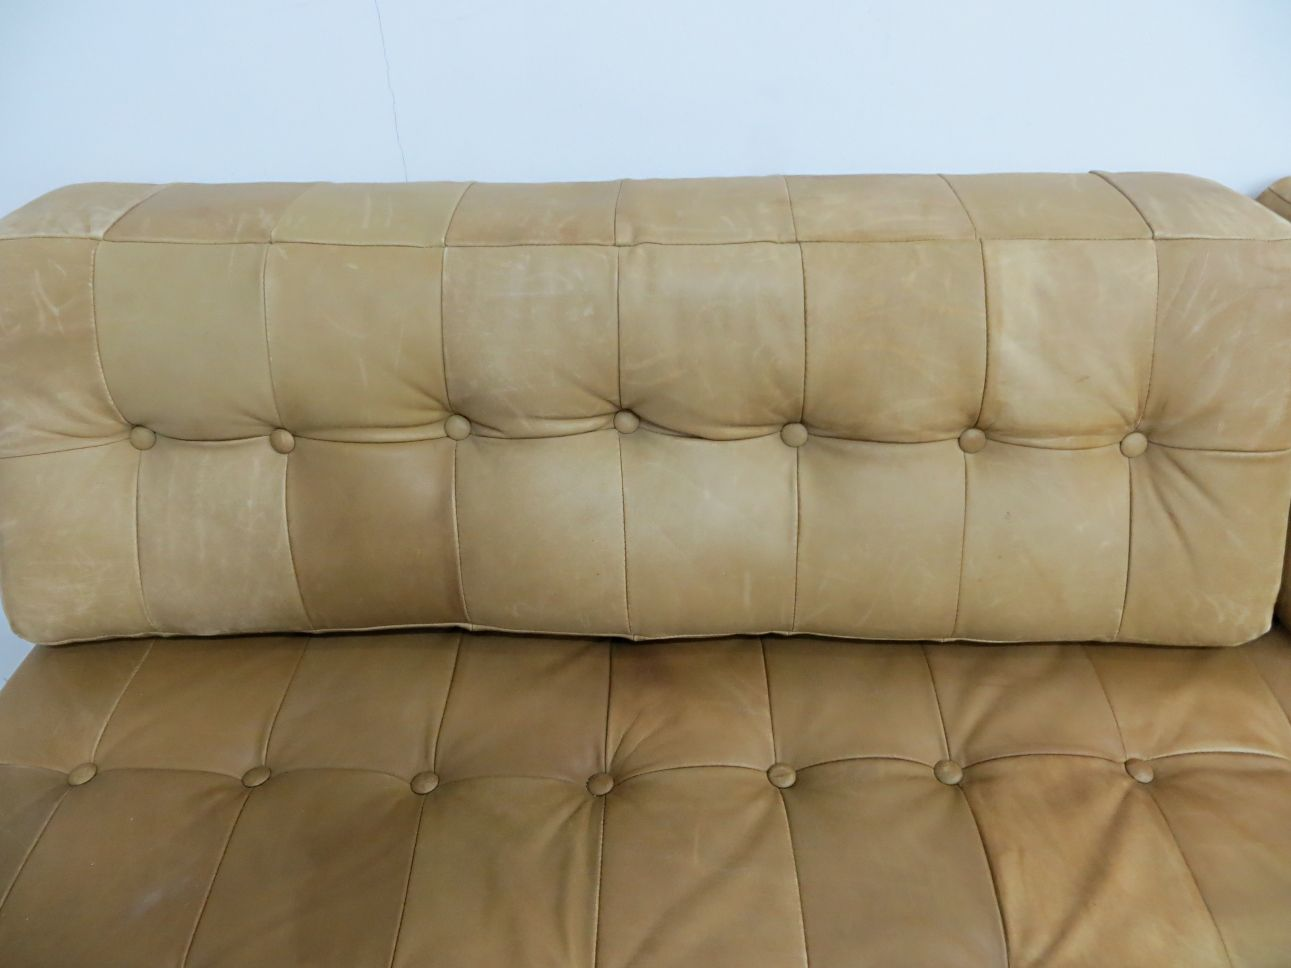 Vintage Leather Sofa Bed for sale at Pamono